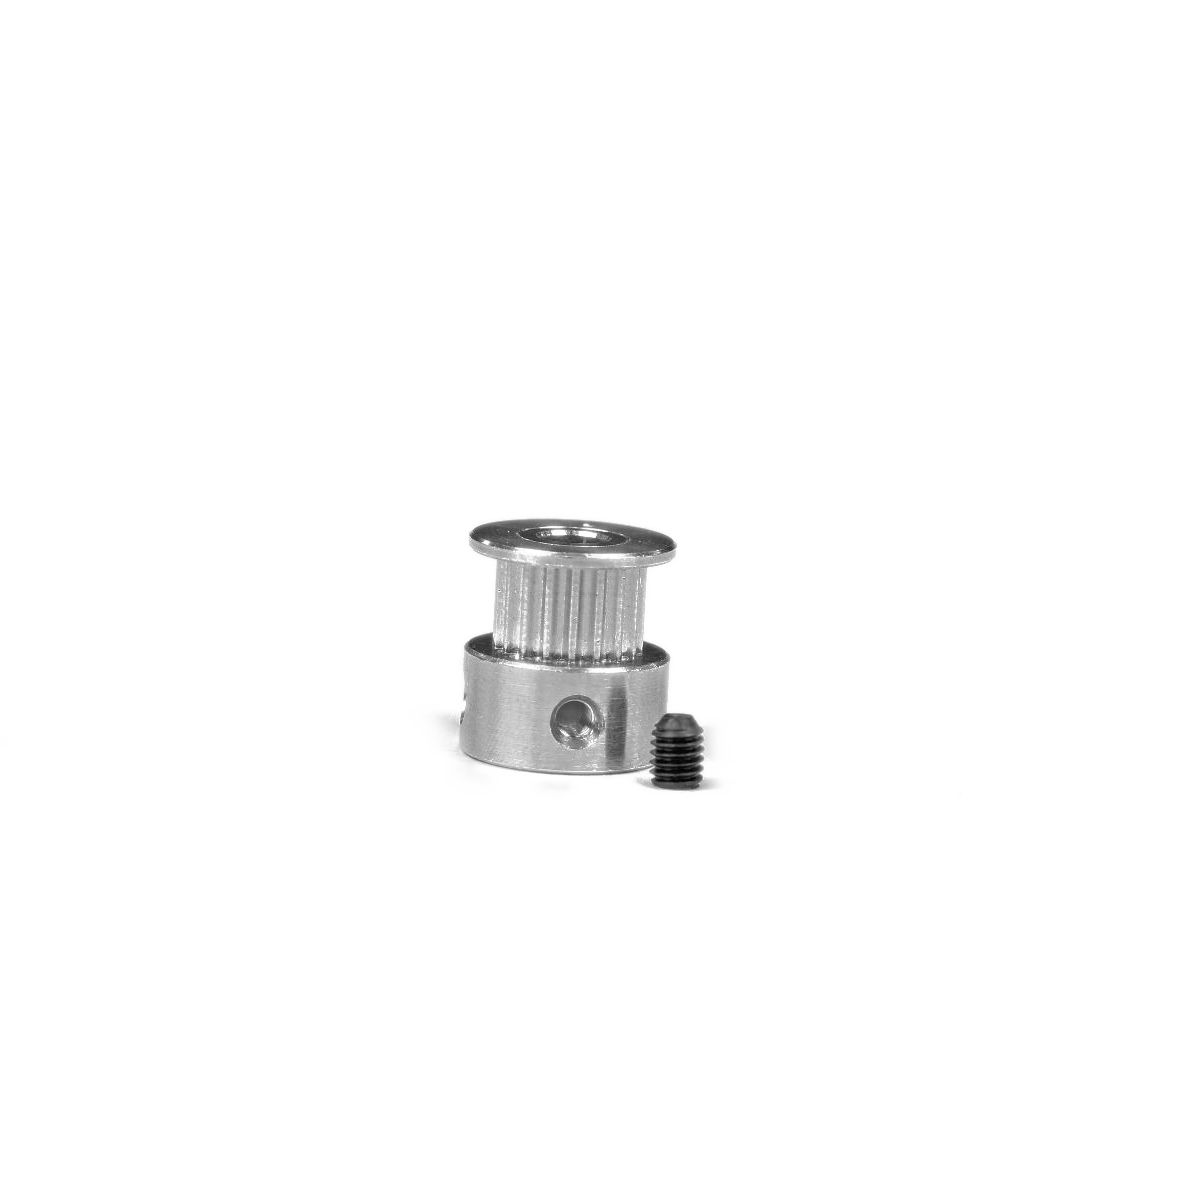 Gates 2MR-18S-06 GT2 Pulley - 3D Printing Canada